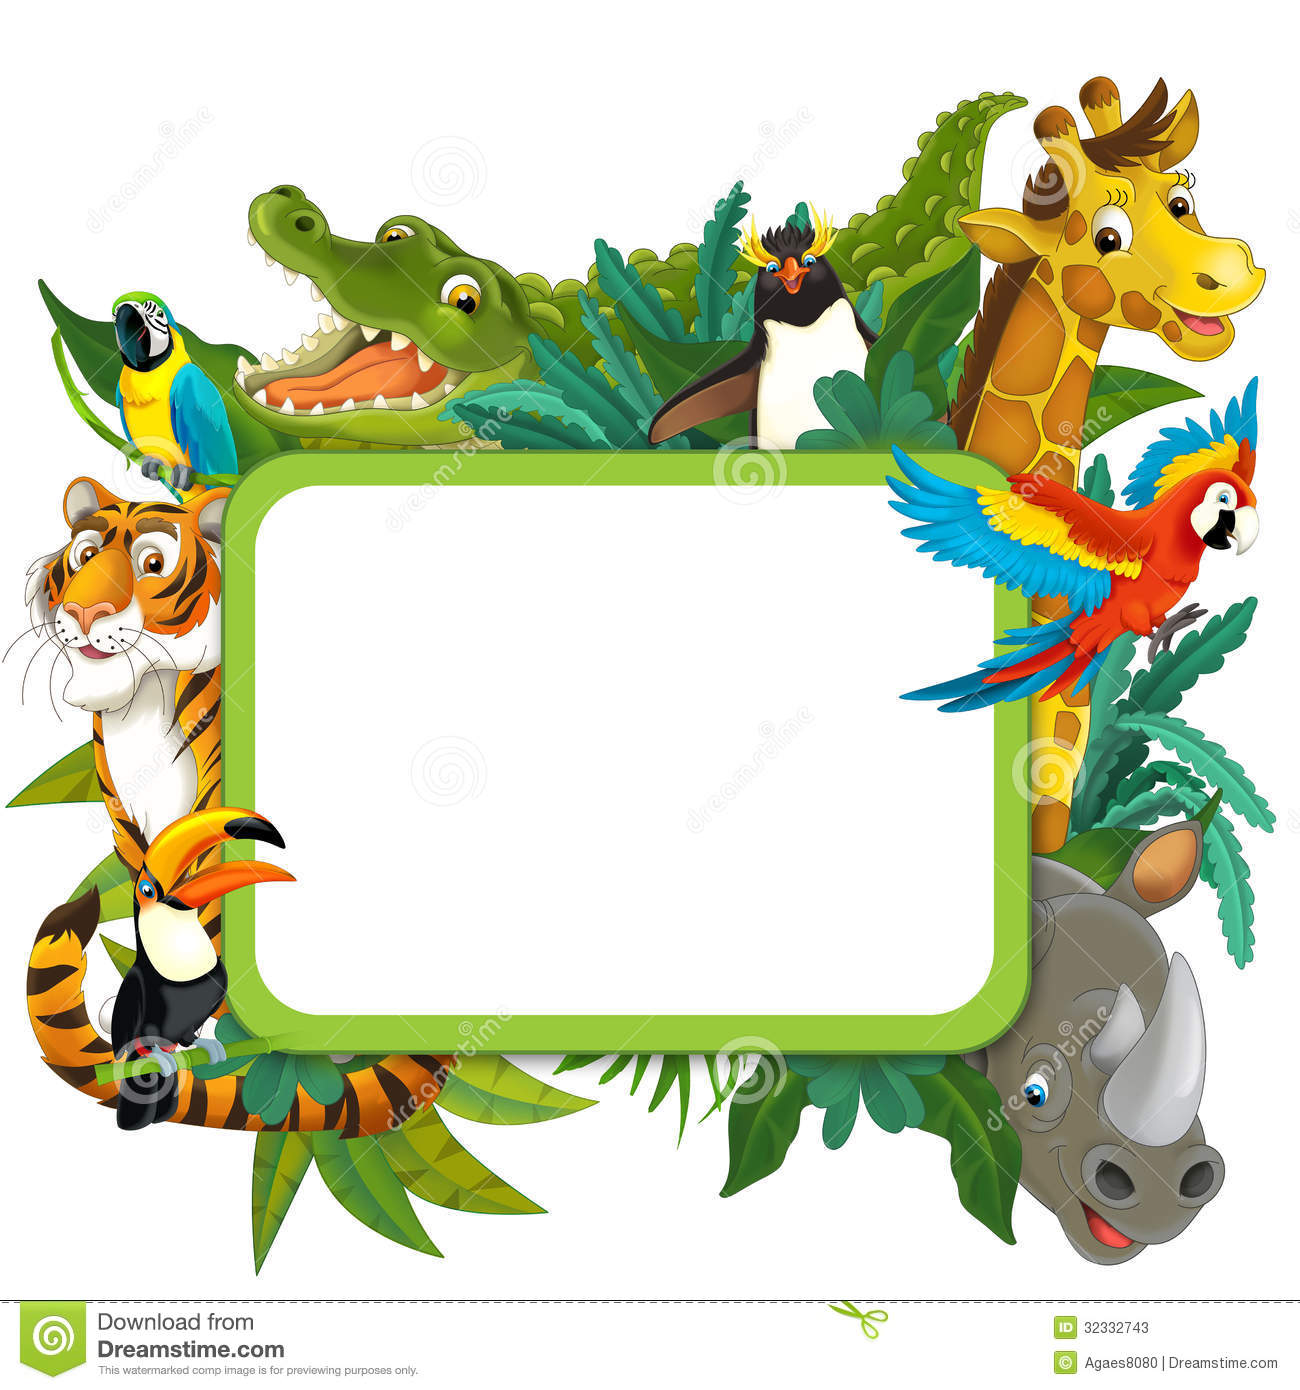 Theme Jungle banner - frame - border - jungle safari theme - illustration for the